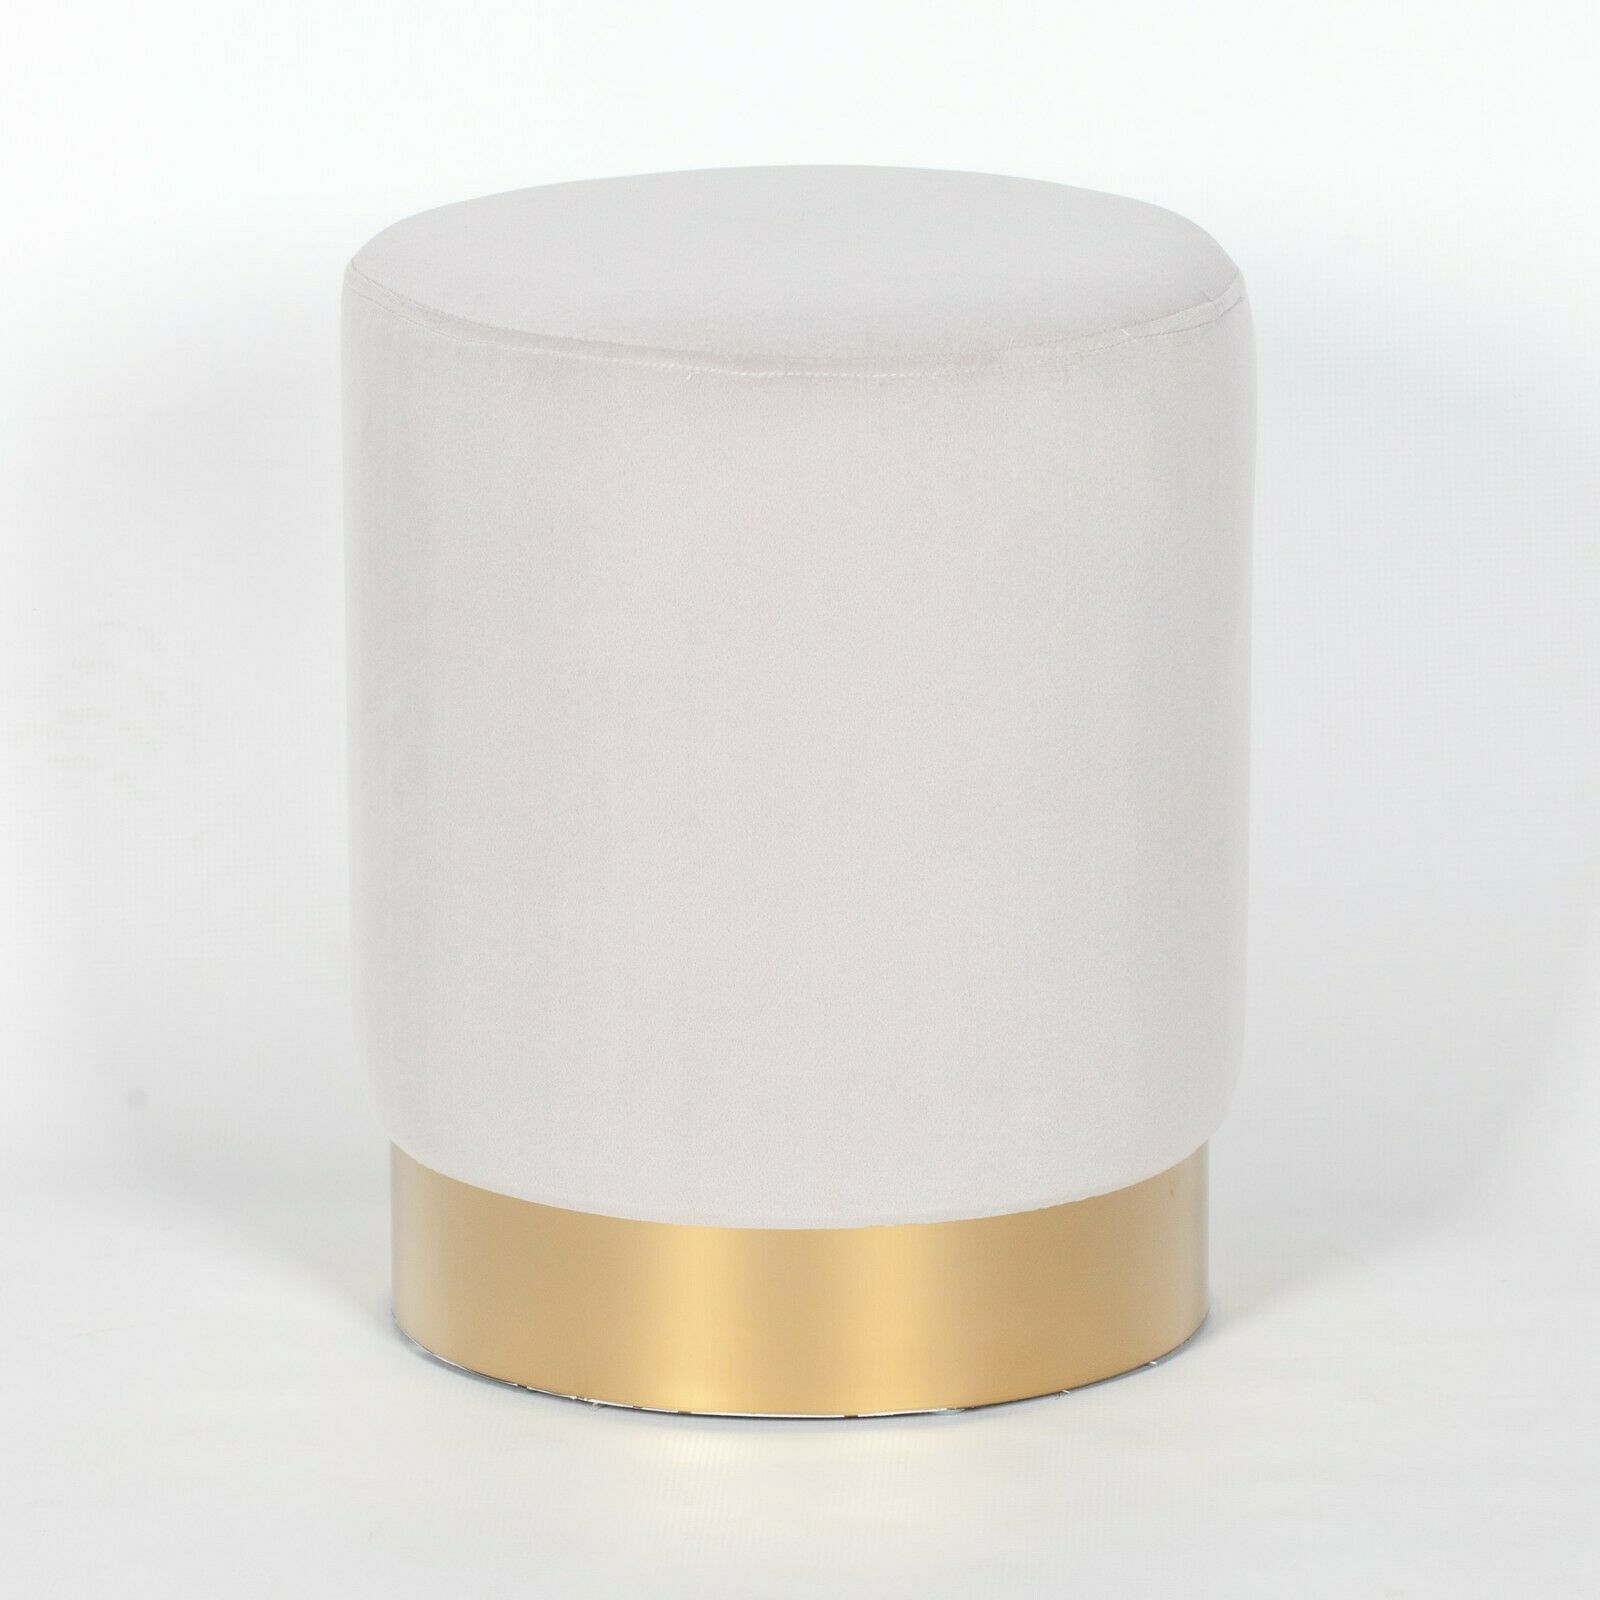 Amour Light Grey Velvet Pouffe Gold Trim Round Stool Ottoman Furniture La Maison Chic Luxury Interiors